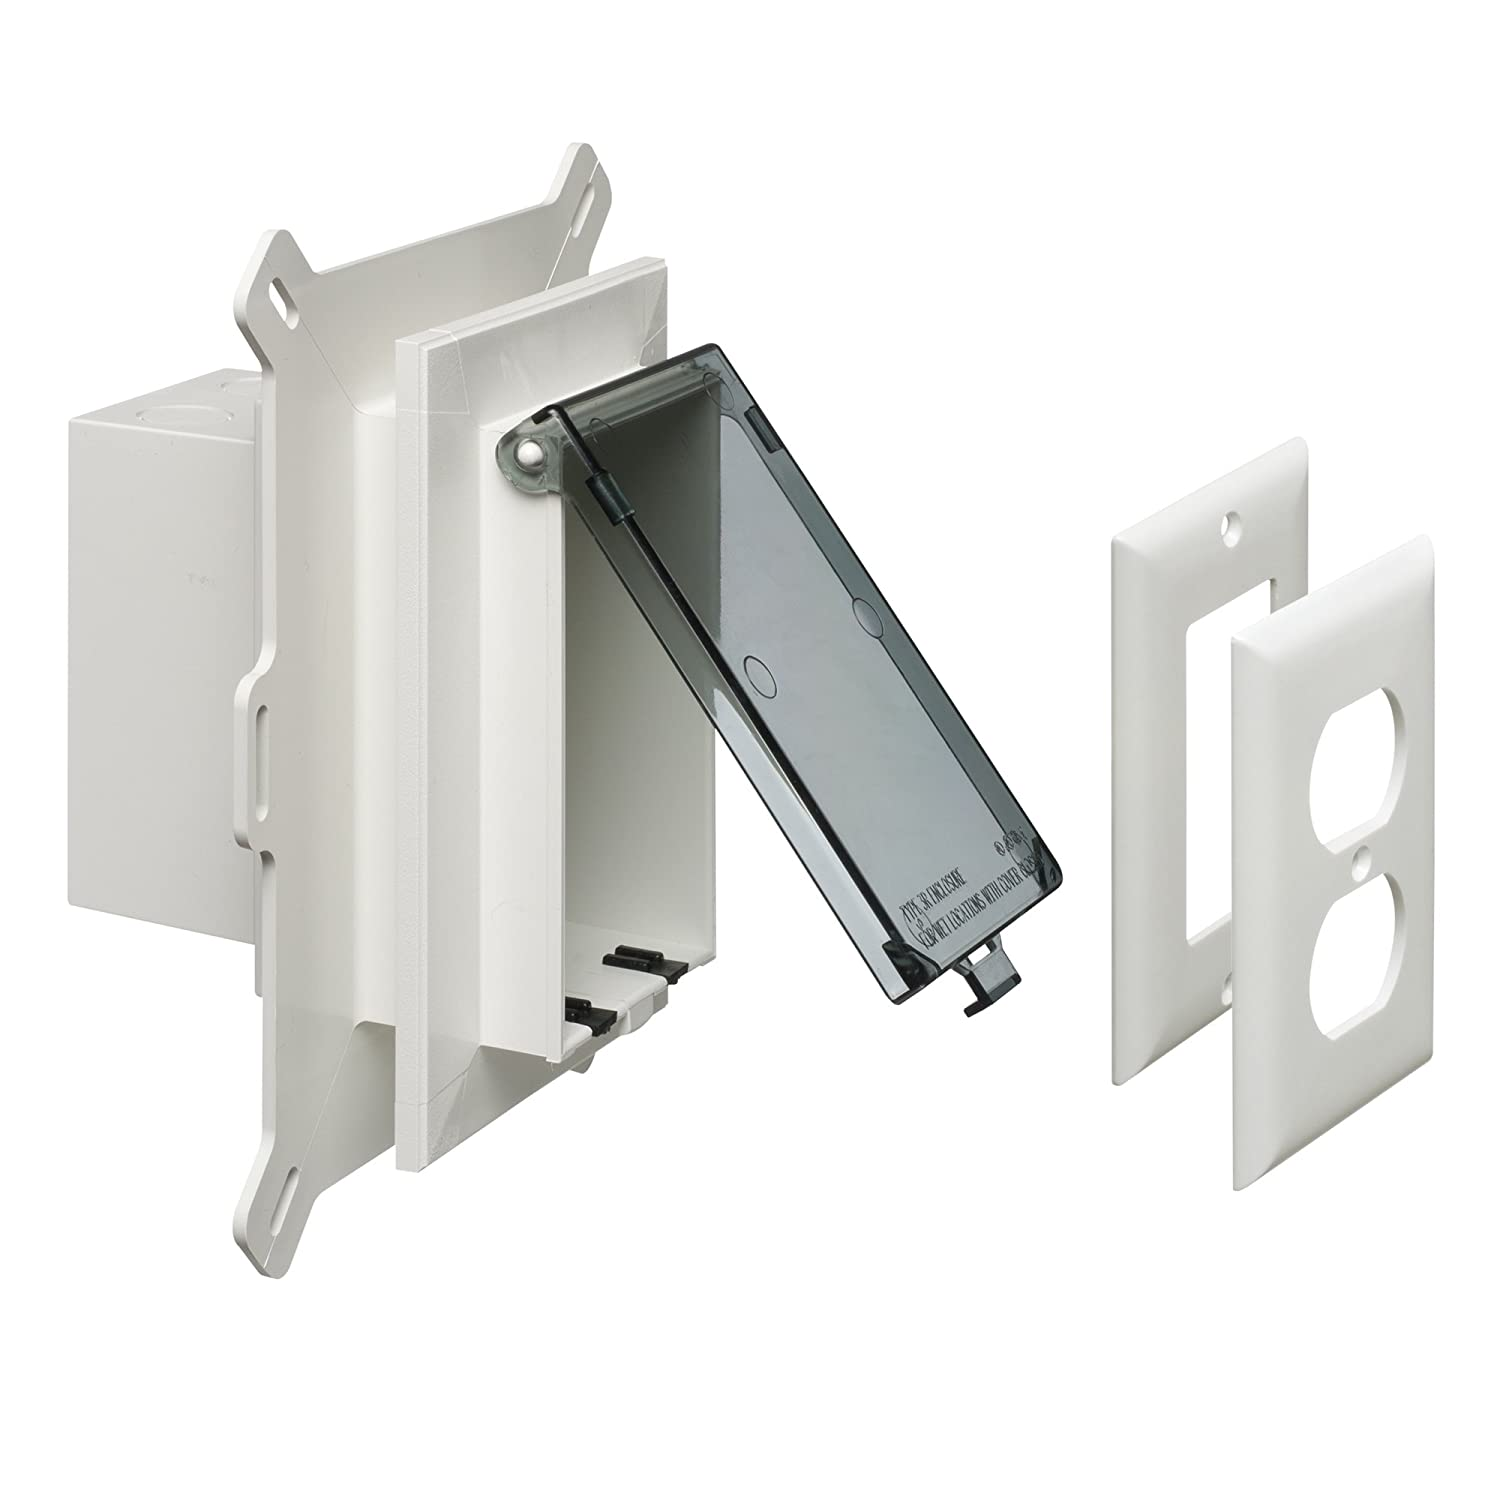 Arlington Dbvs1c 1 Low Profile In Box Recessed Outlet Wall Plate Electrical Adding An Kit For New Vinyl Siding Construction Vertical Gang Clear